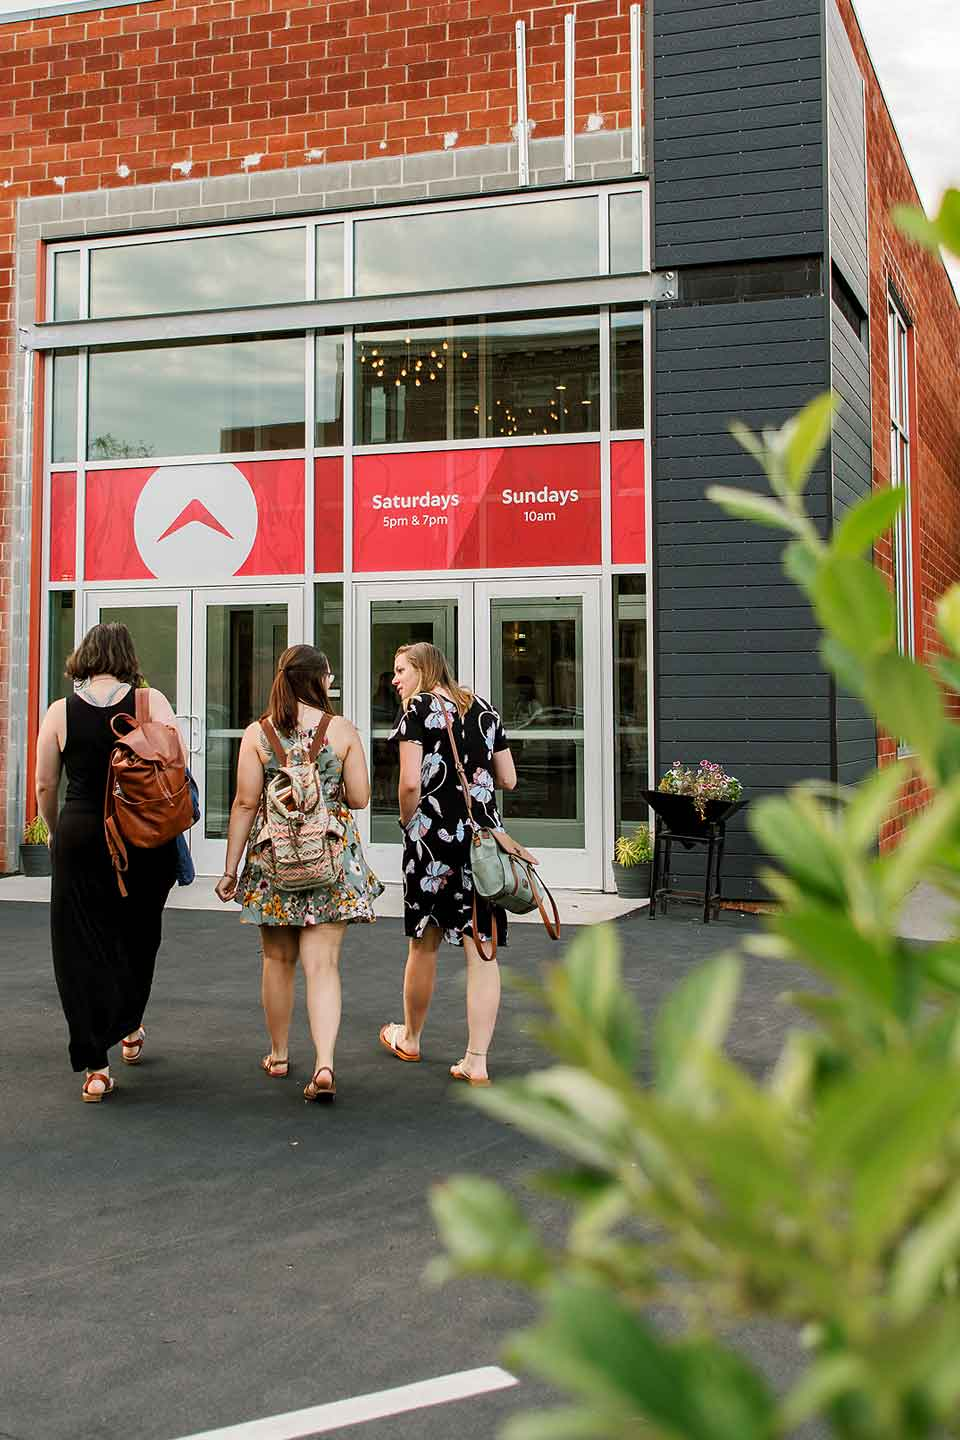 Three women approach the main entrance of Walnut Creek Church - Downtown